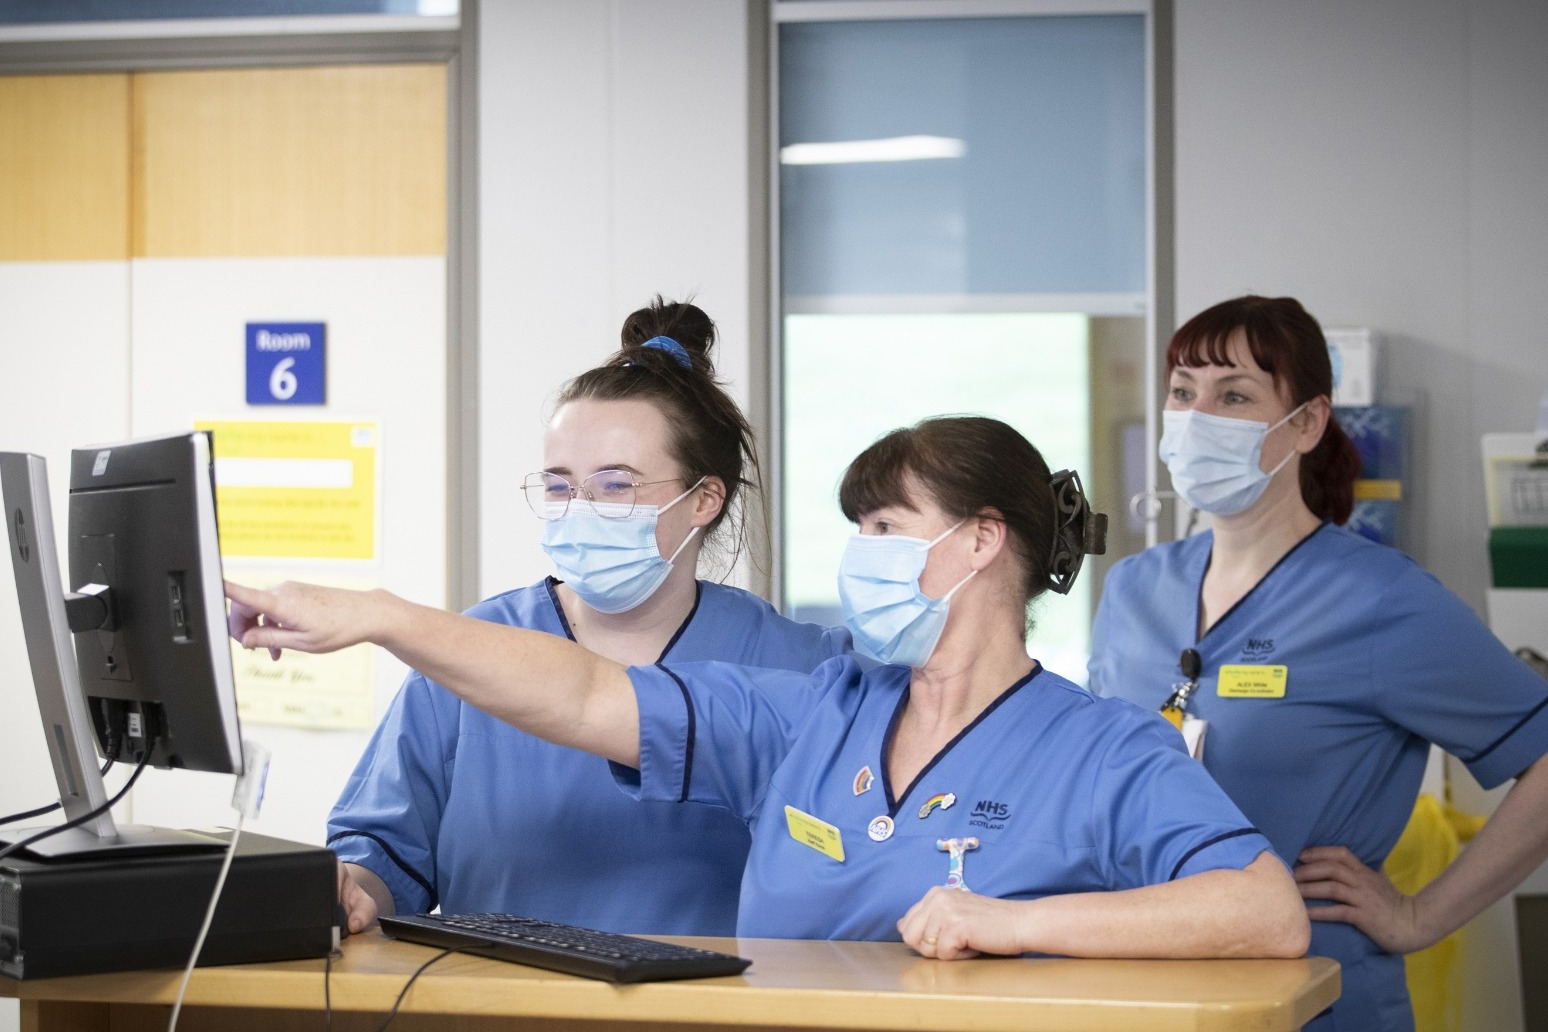 NHS staff say current pressures as worrying as Covid peak